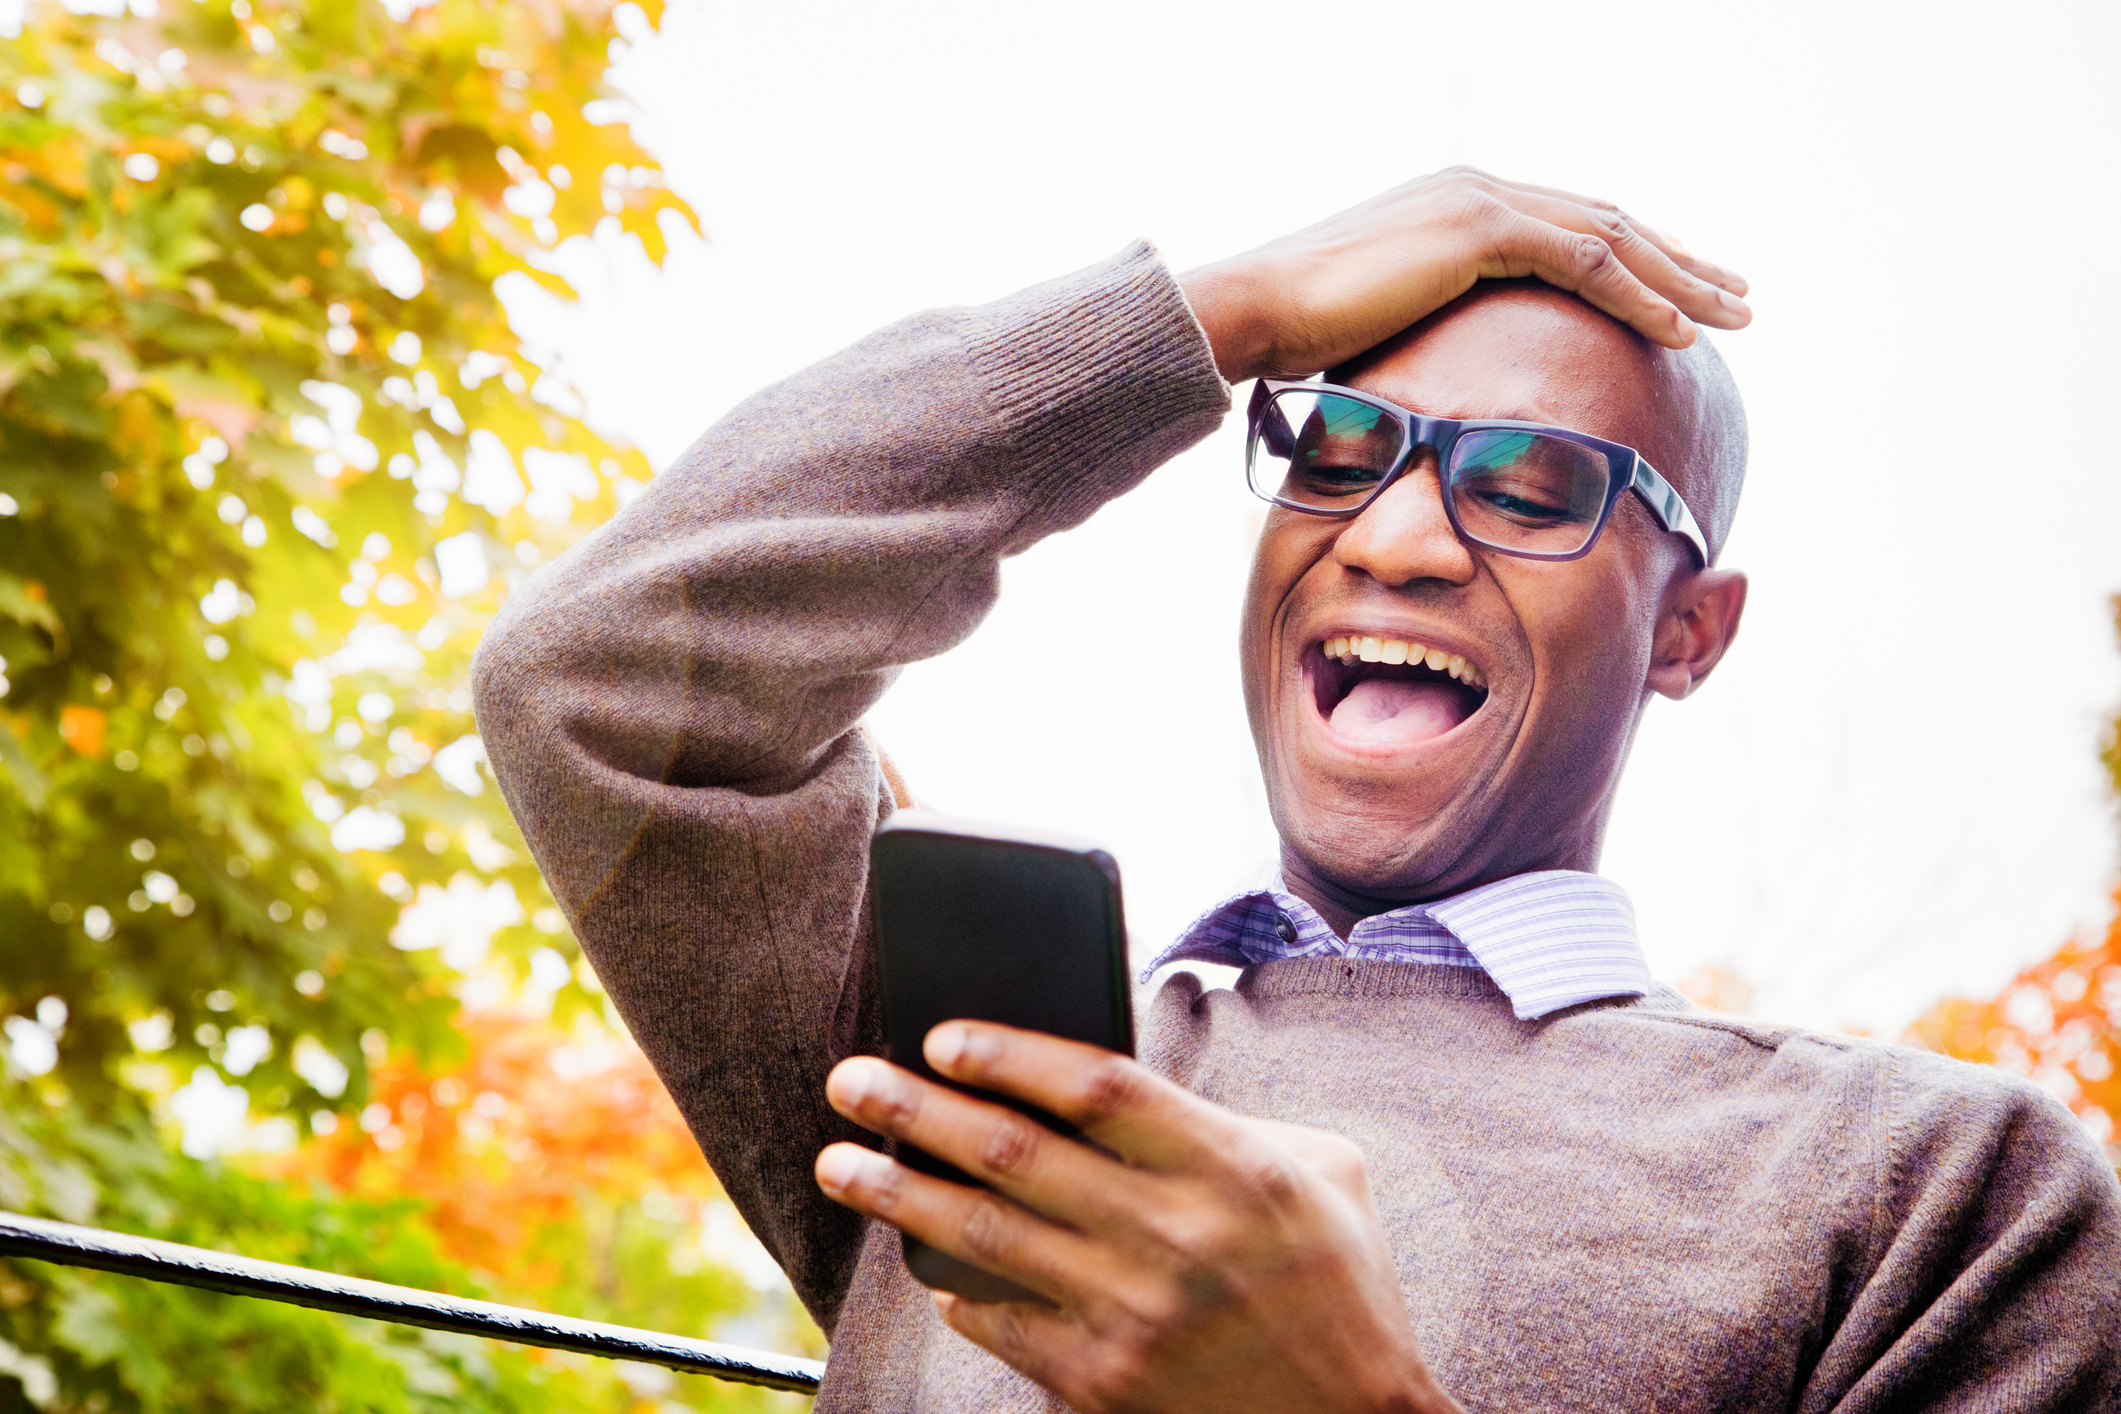 Mature man laughs out loud at story on mobile phone